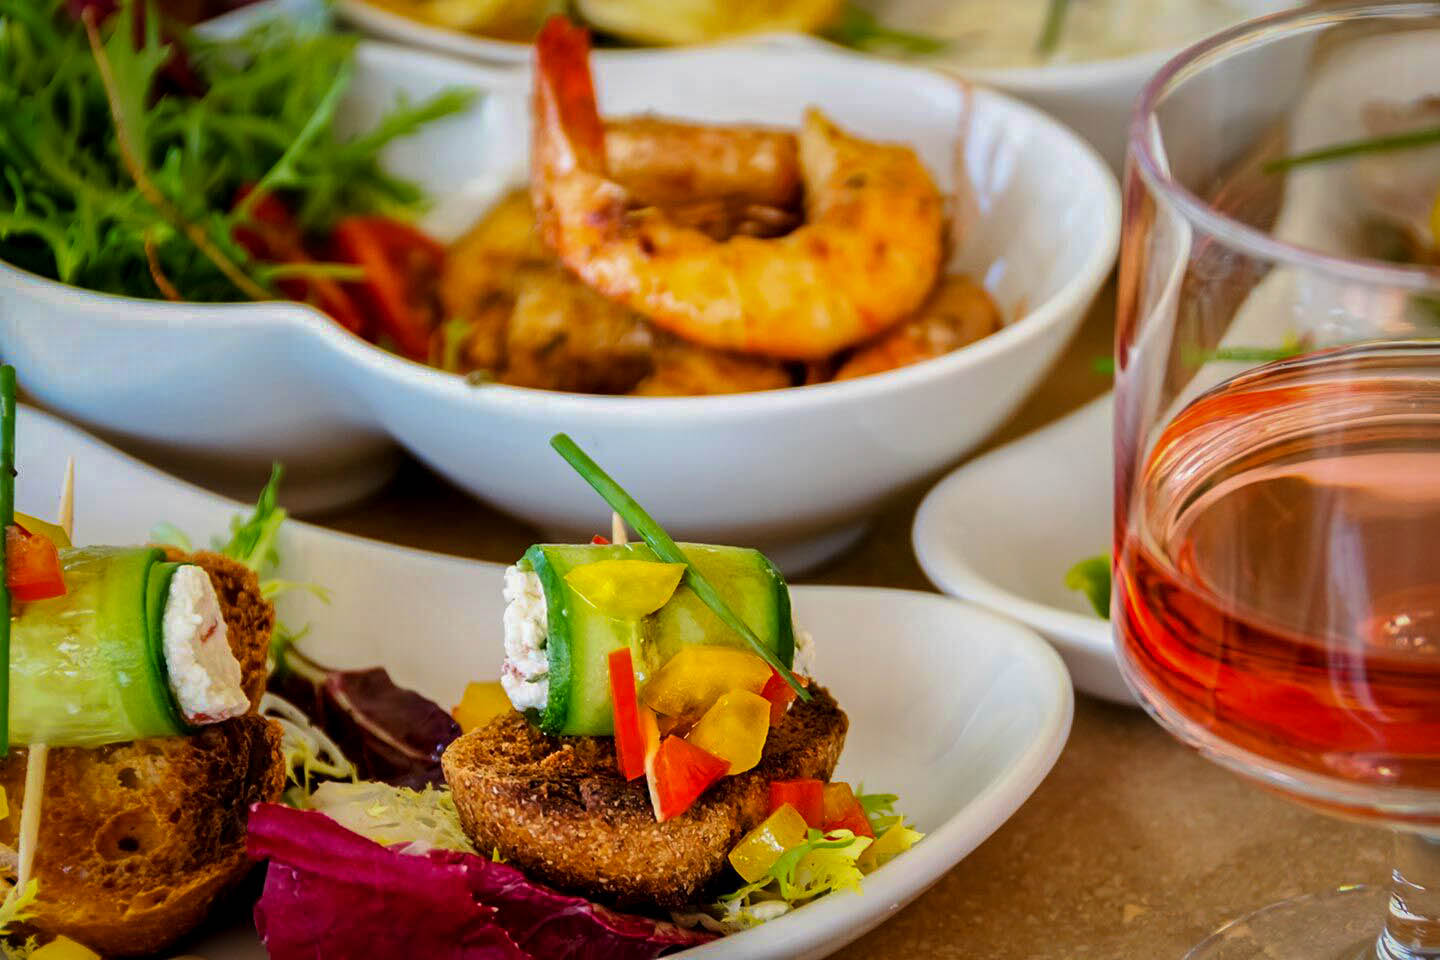 Mezes by bistro4 by Boutique Hotel 4reasons in Yalikavak Bodrum